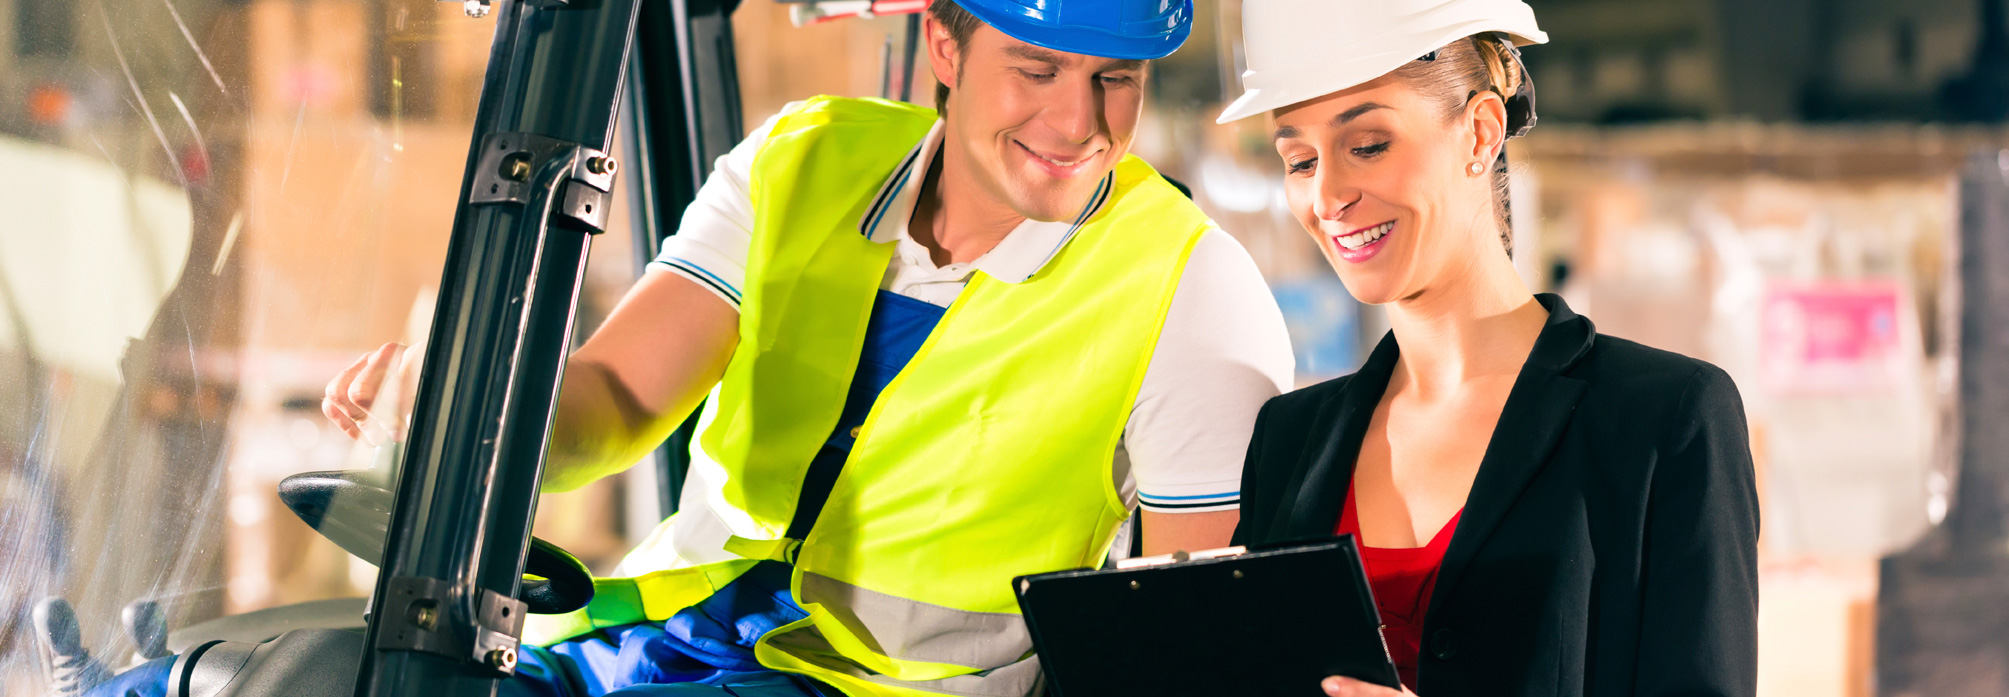 PMN Consulting Inspection services